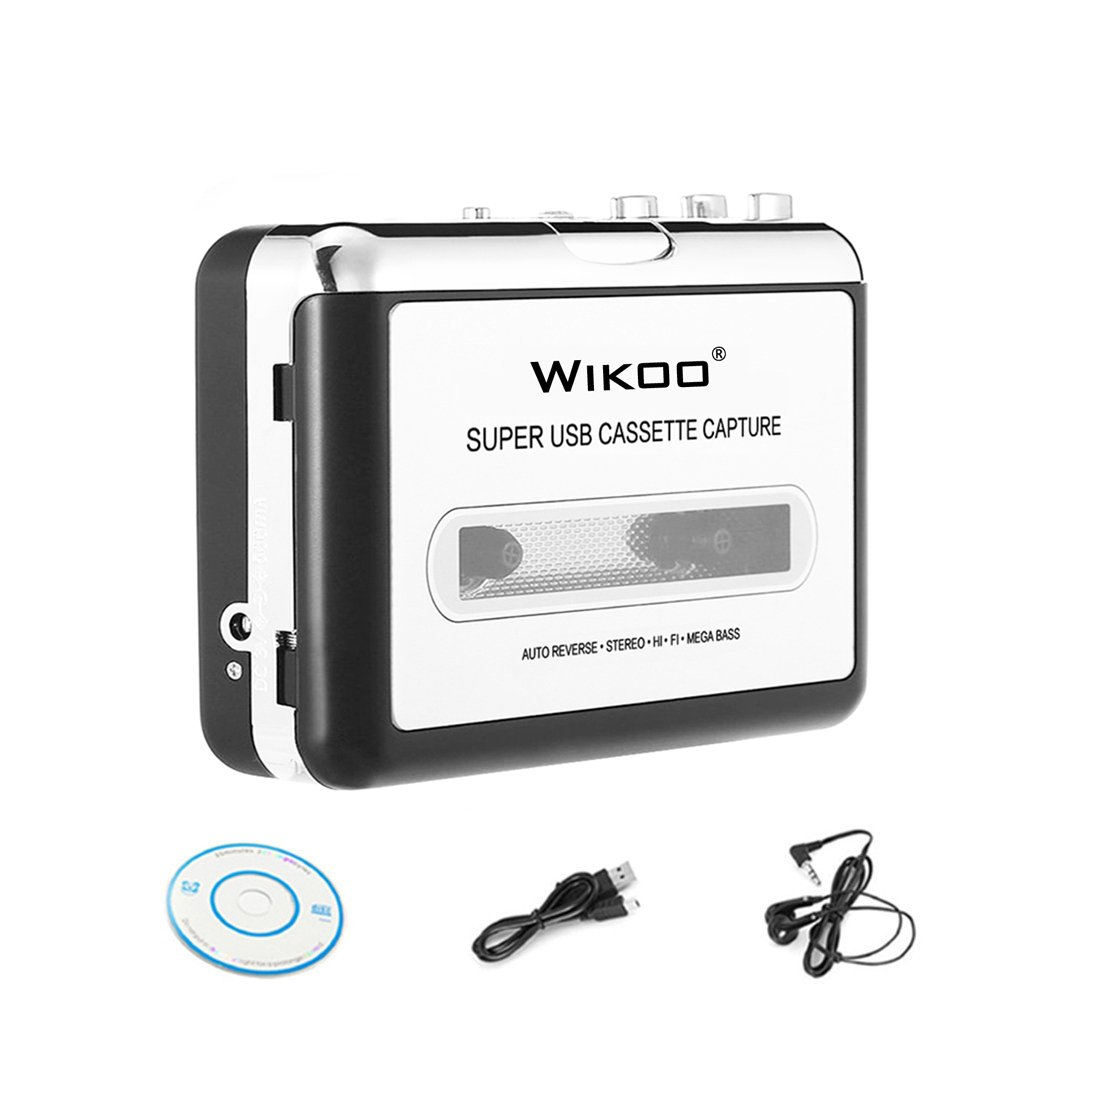 Cassette to MP3 Converter, Wikoo Portable USB Cassette-to-MP3 Player Converter, Convert Cassettes to MP3/CD with USB Cable, Headphones and Software